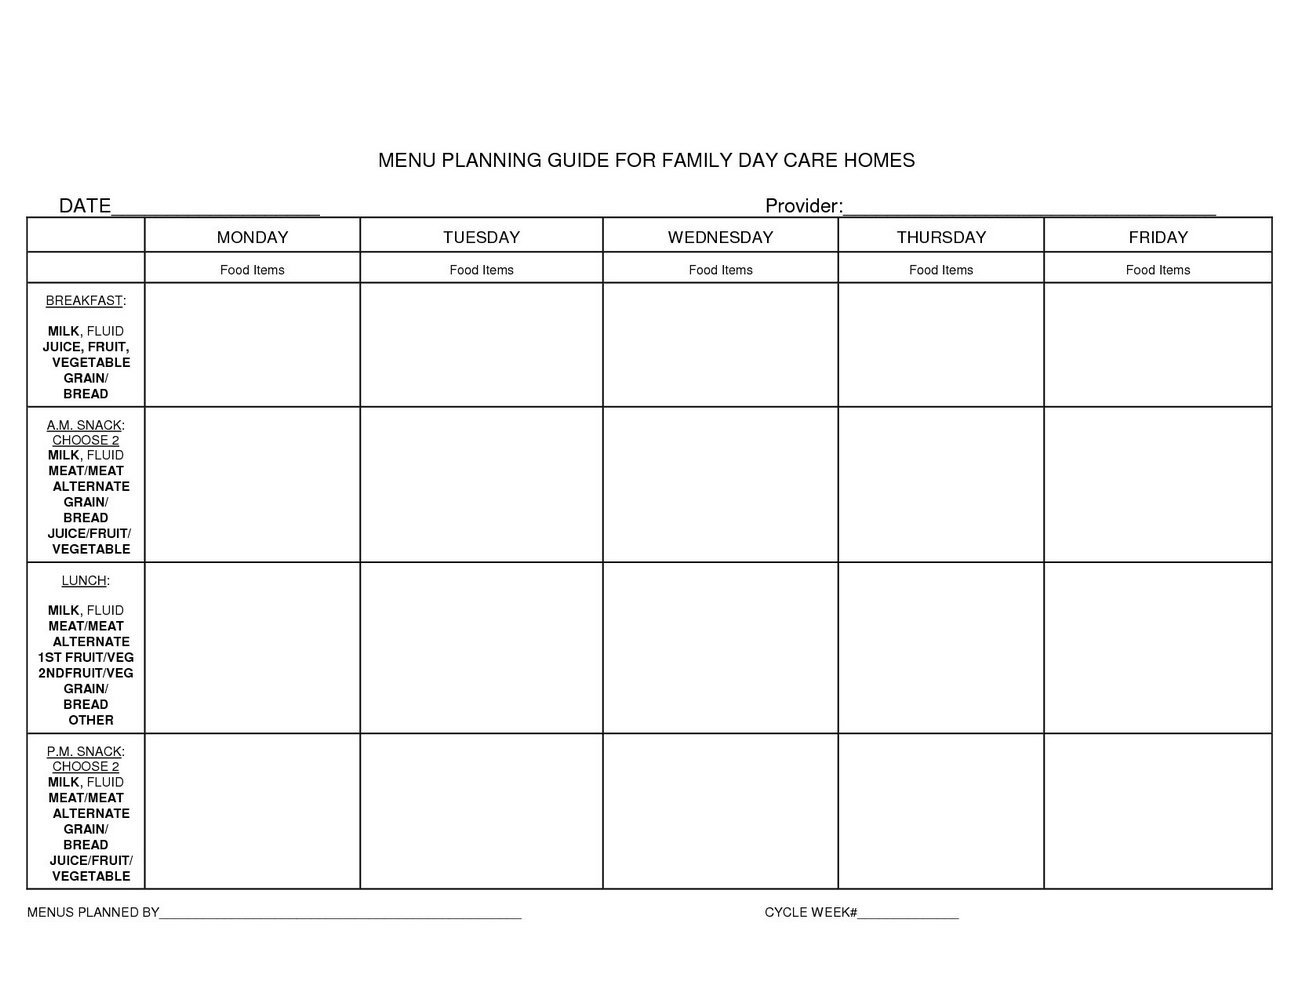 photograph relating to Free Printable Daycare Menus identified as Blank Daycare Menu Template - Templates #MjMwNDM Resume